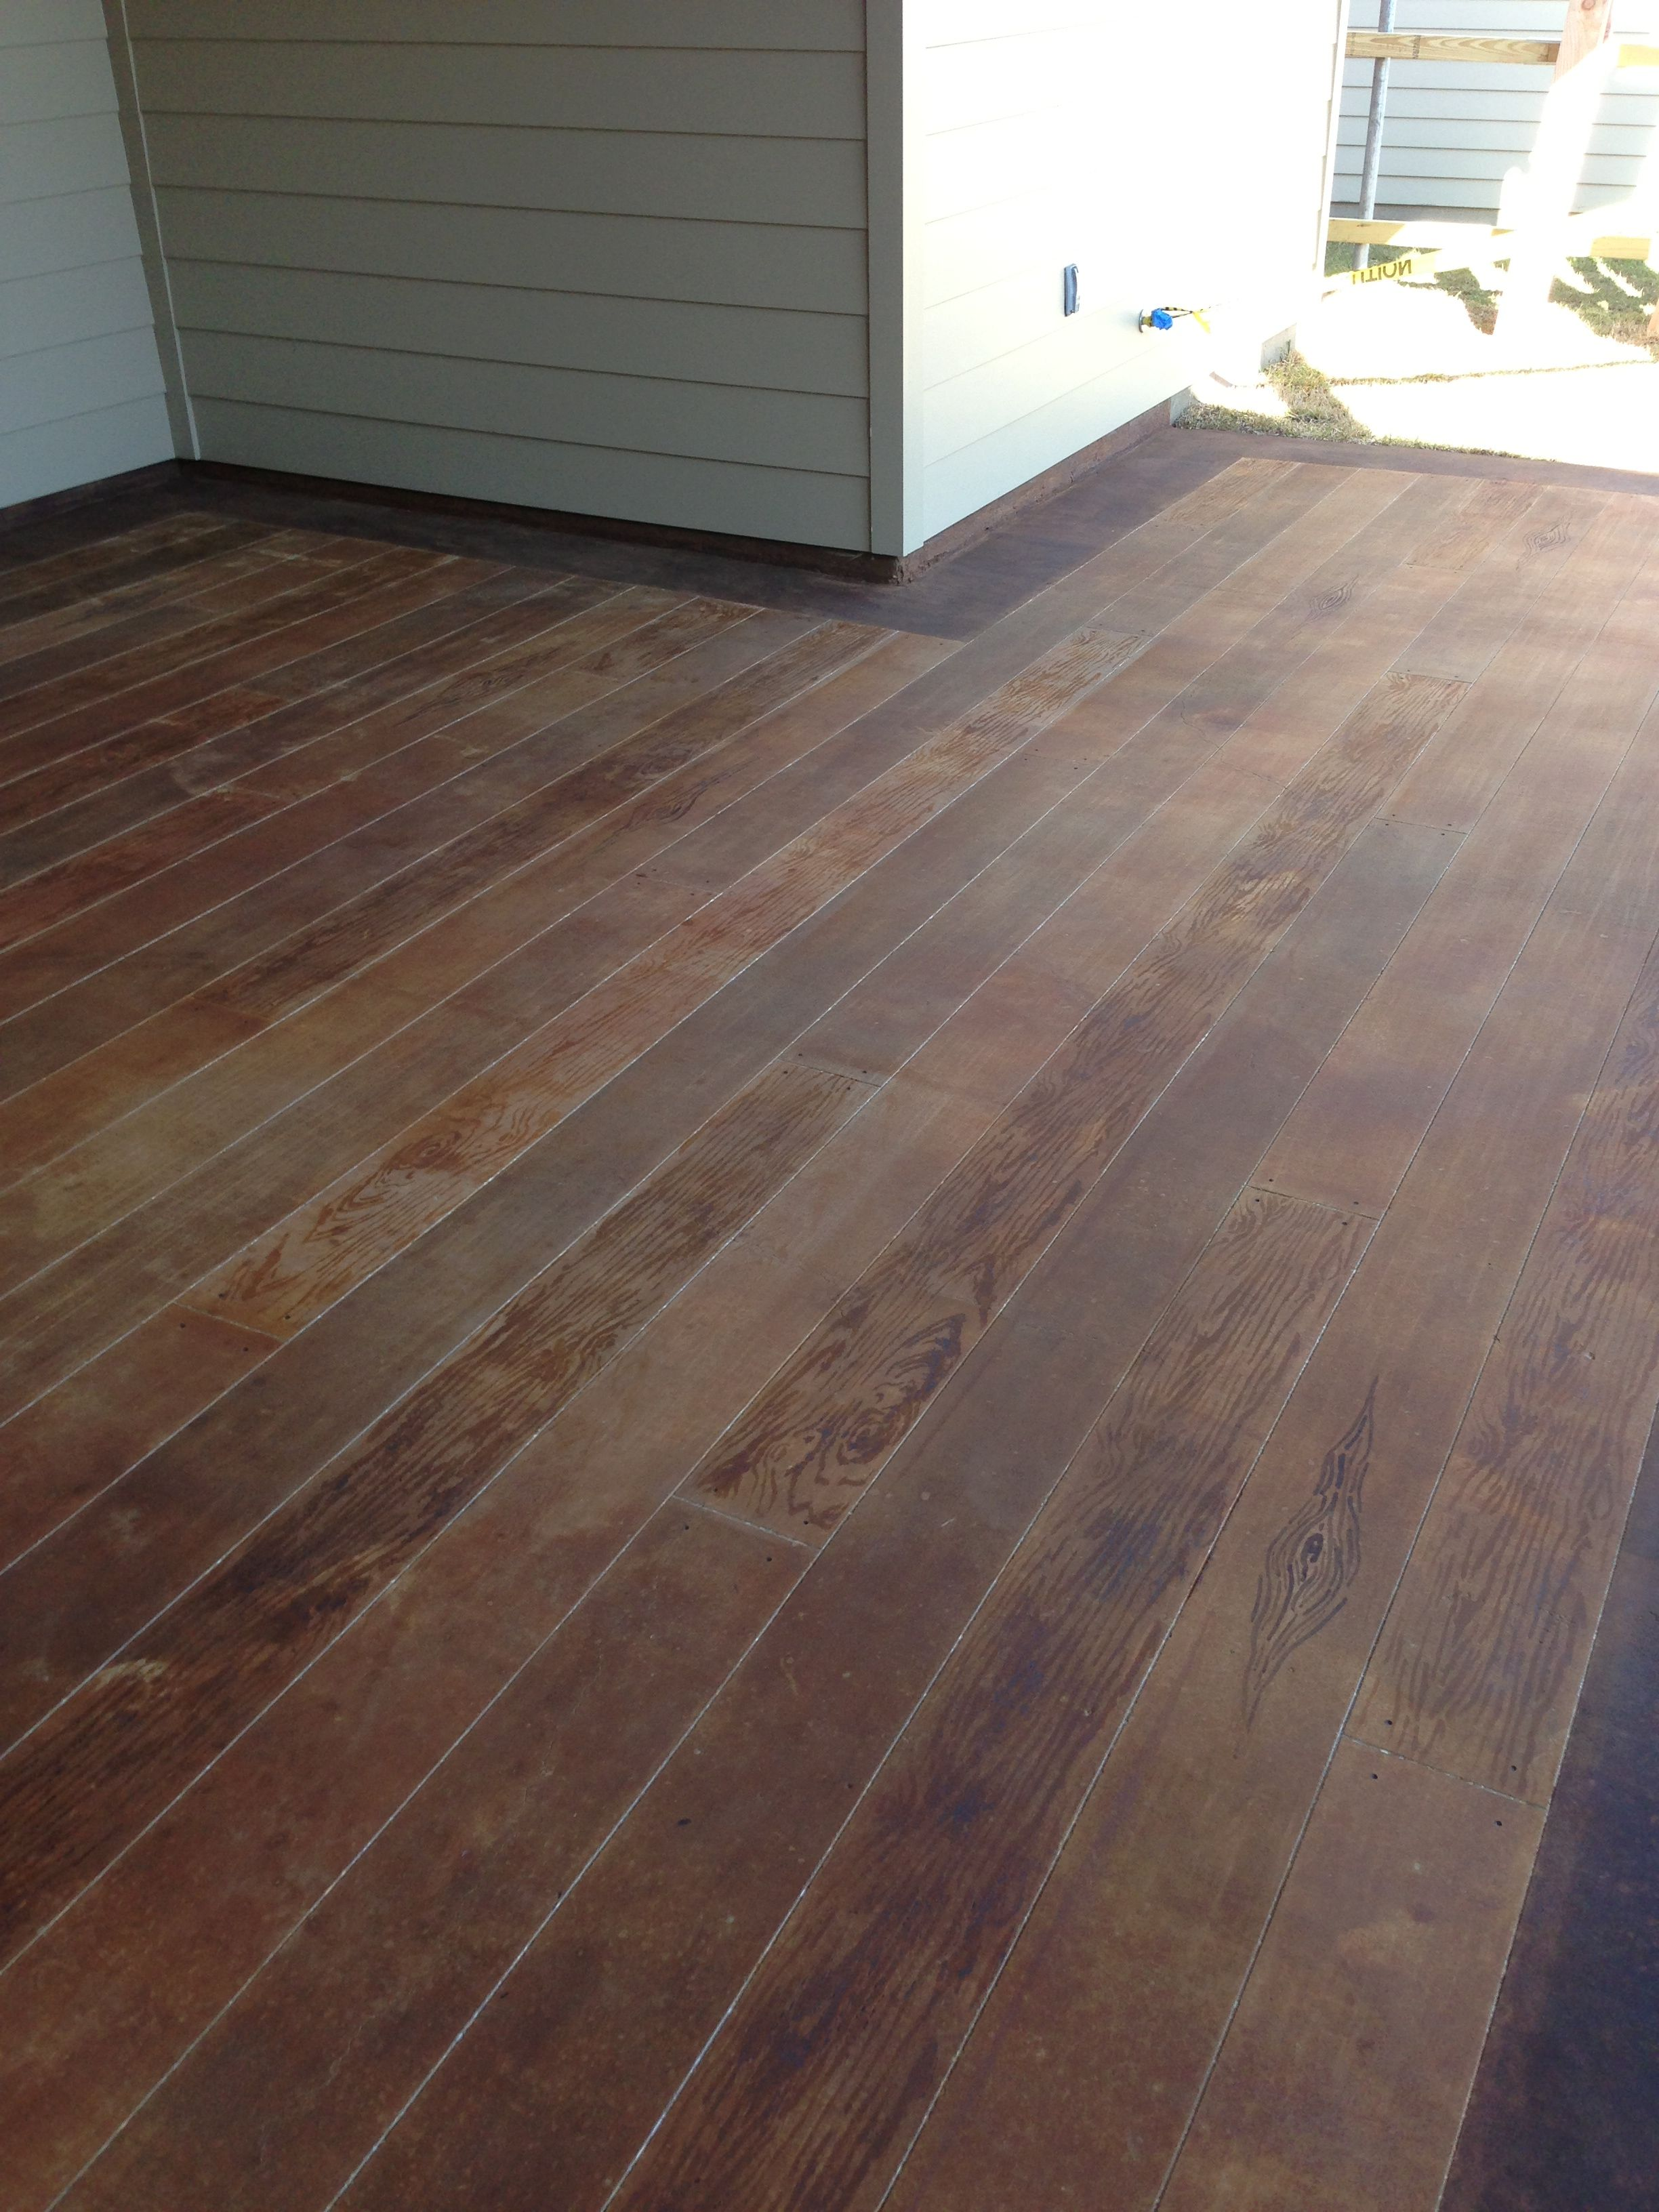 Concrete Wood Floors Concrete Wood Look I Want This For The Back Patioconcrete